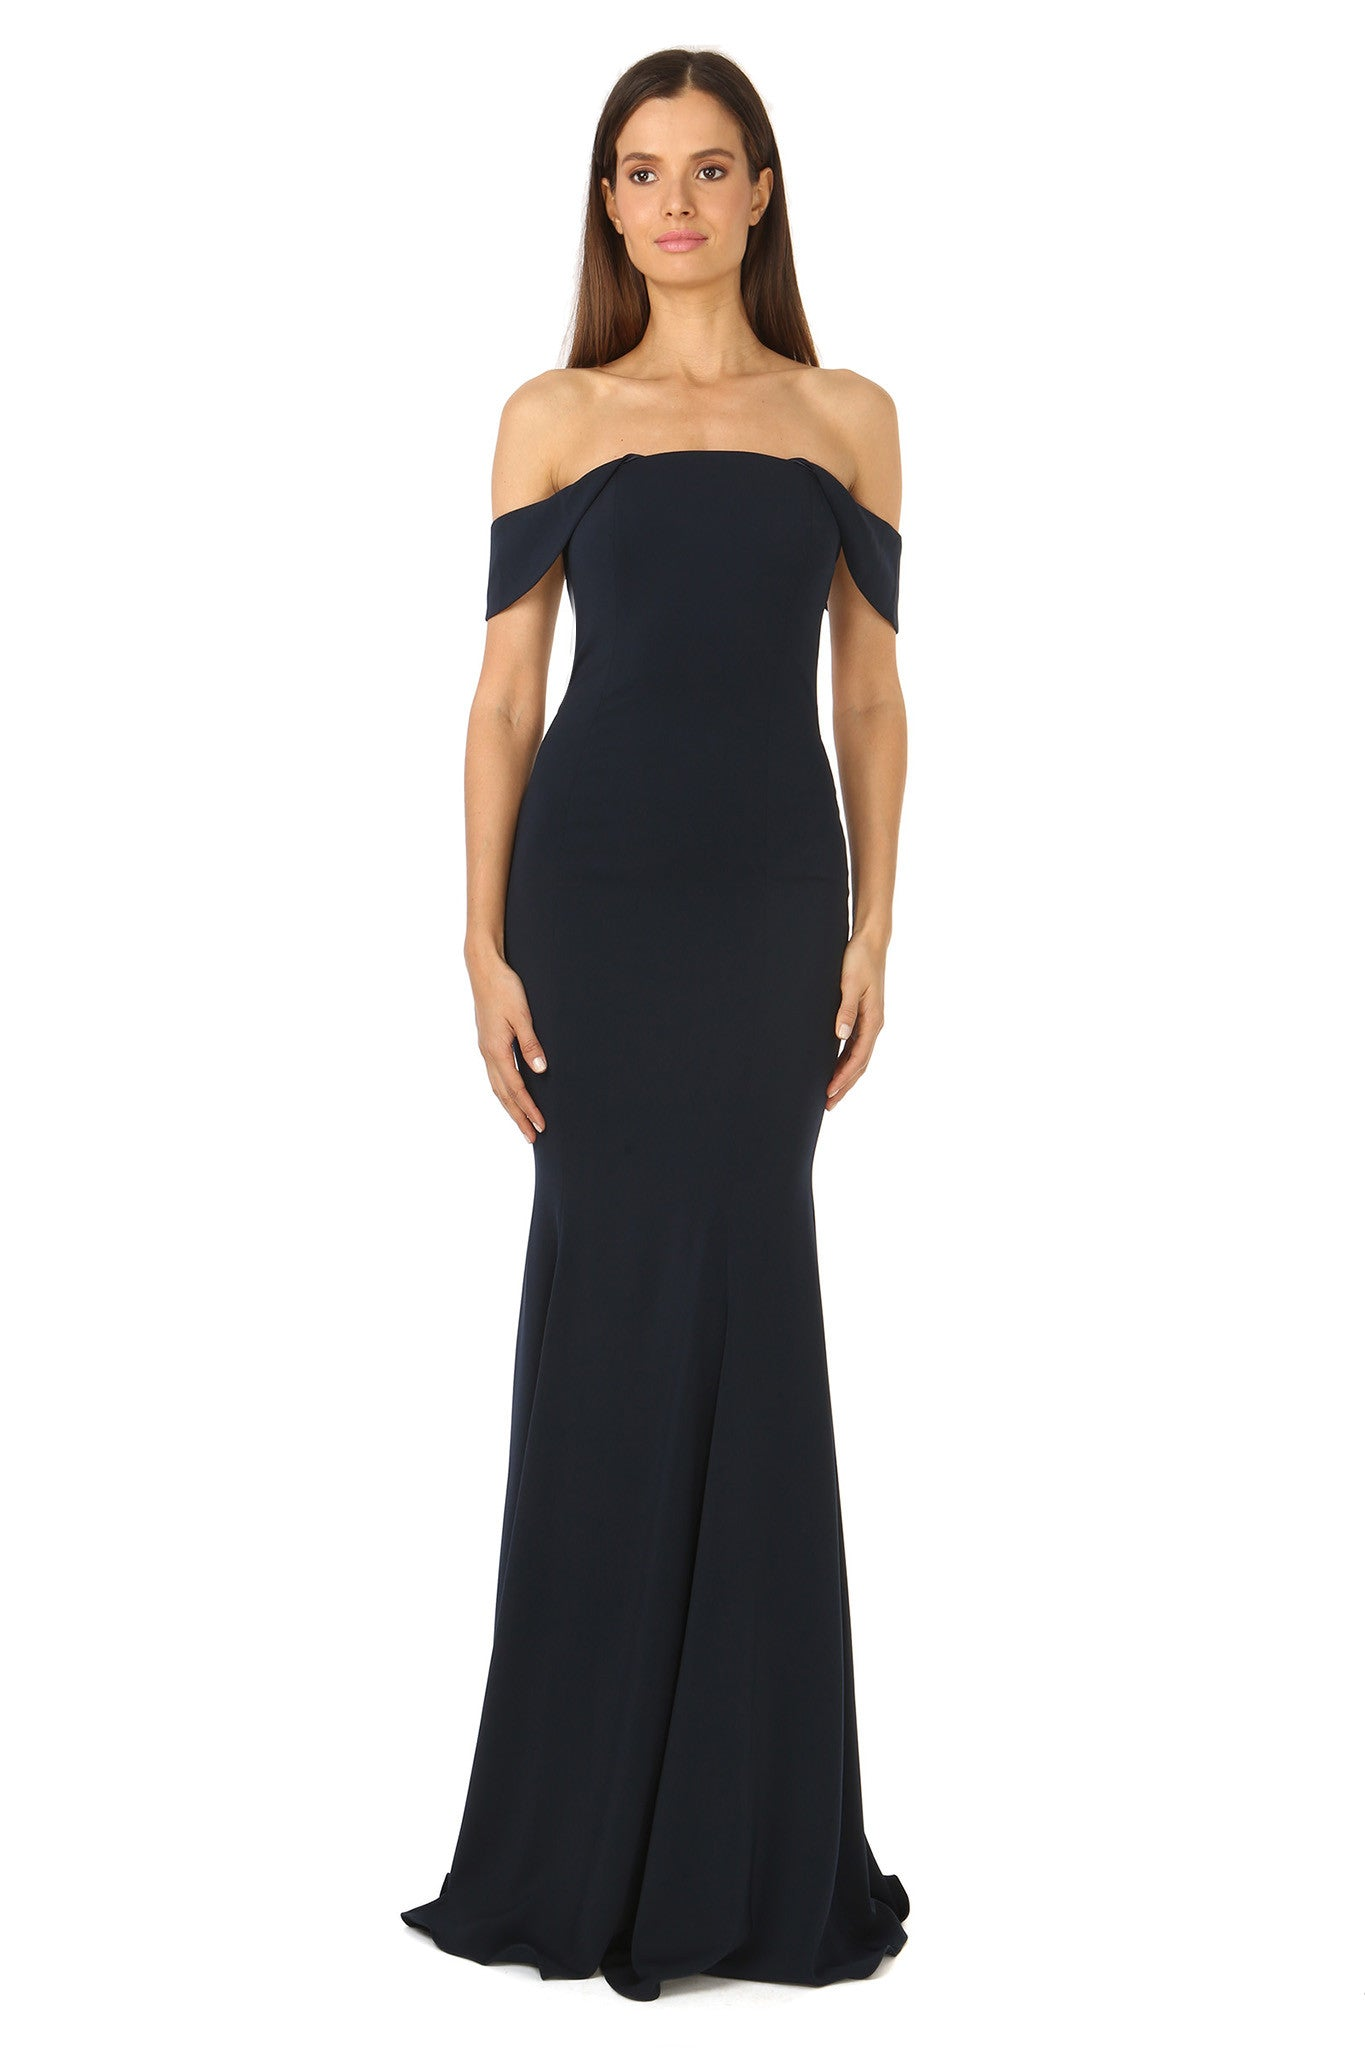 Jay Godfrey Off-the-Shoulder Navy Gown - Front View